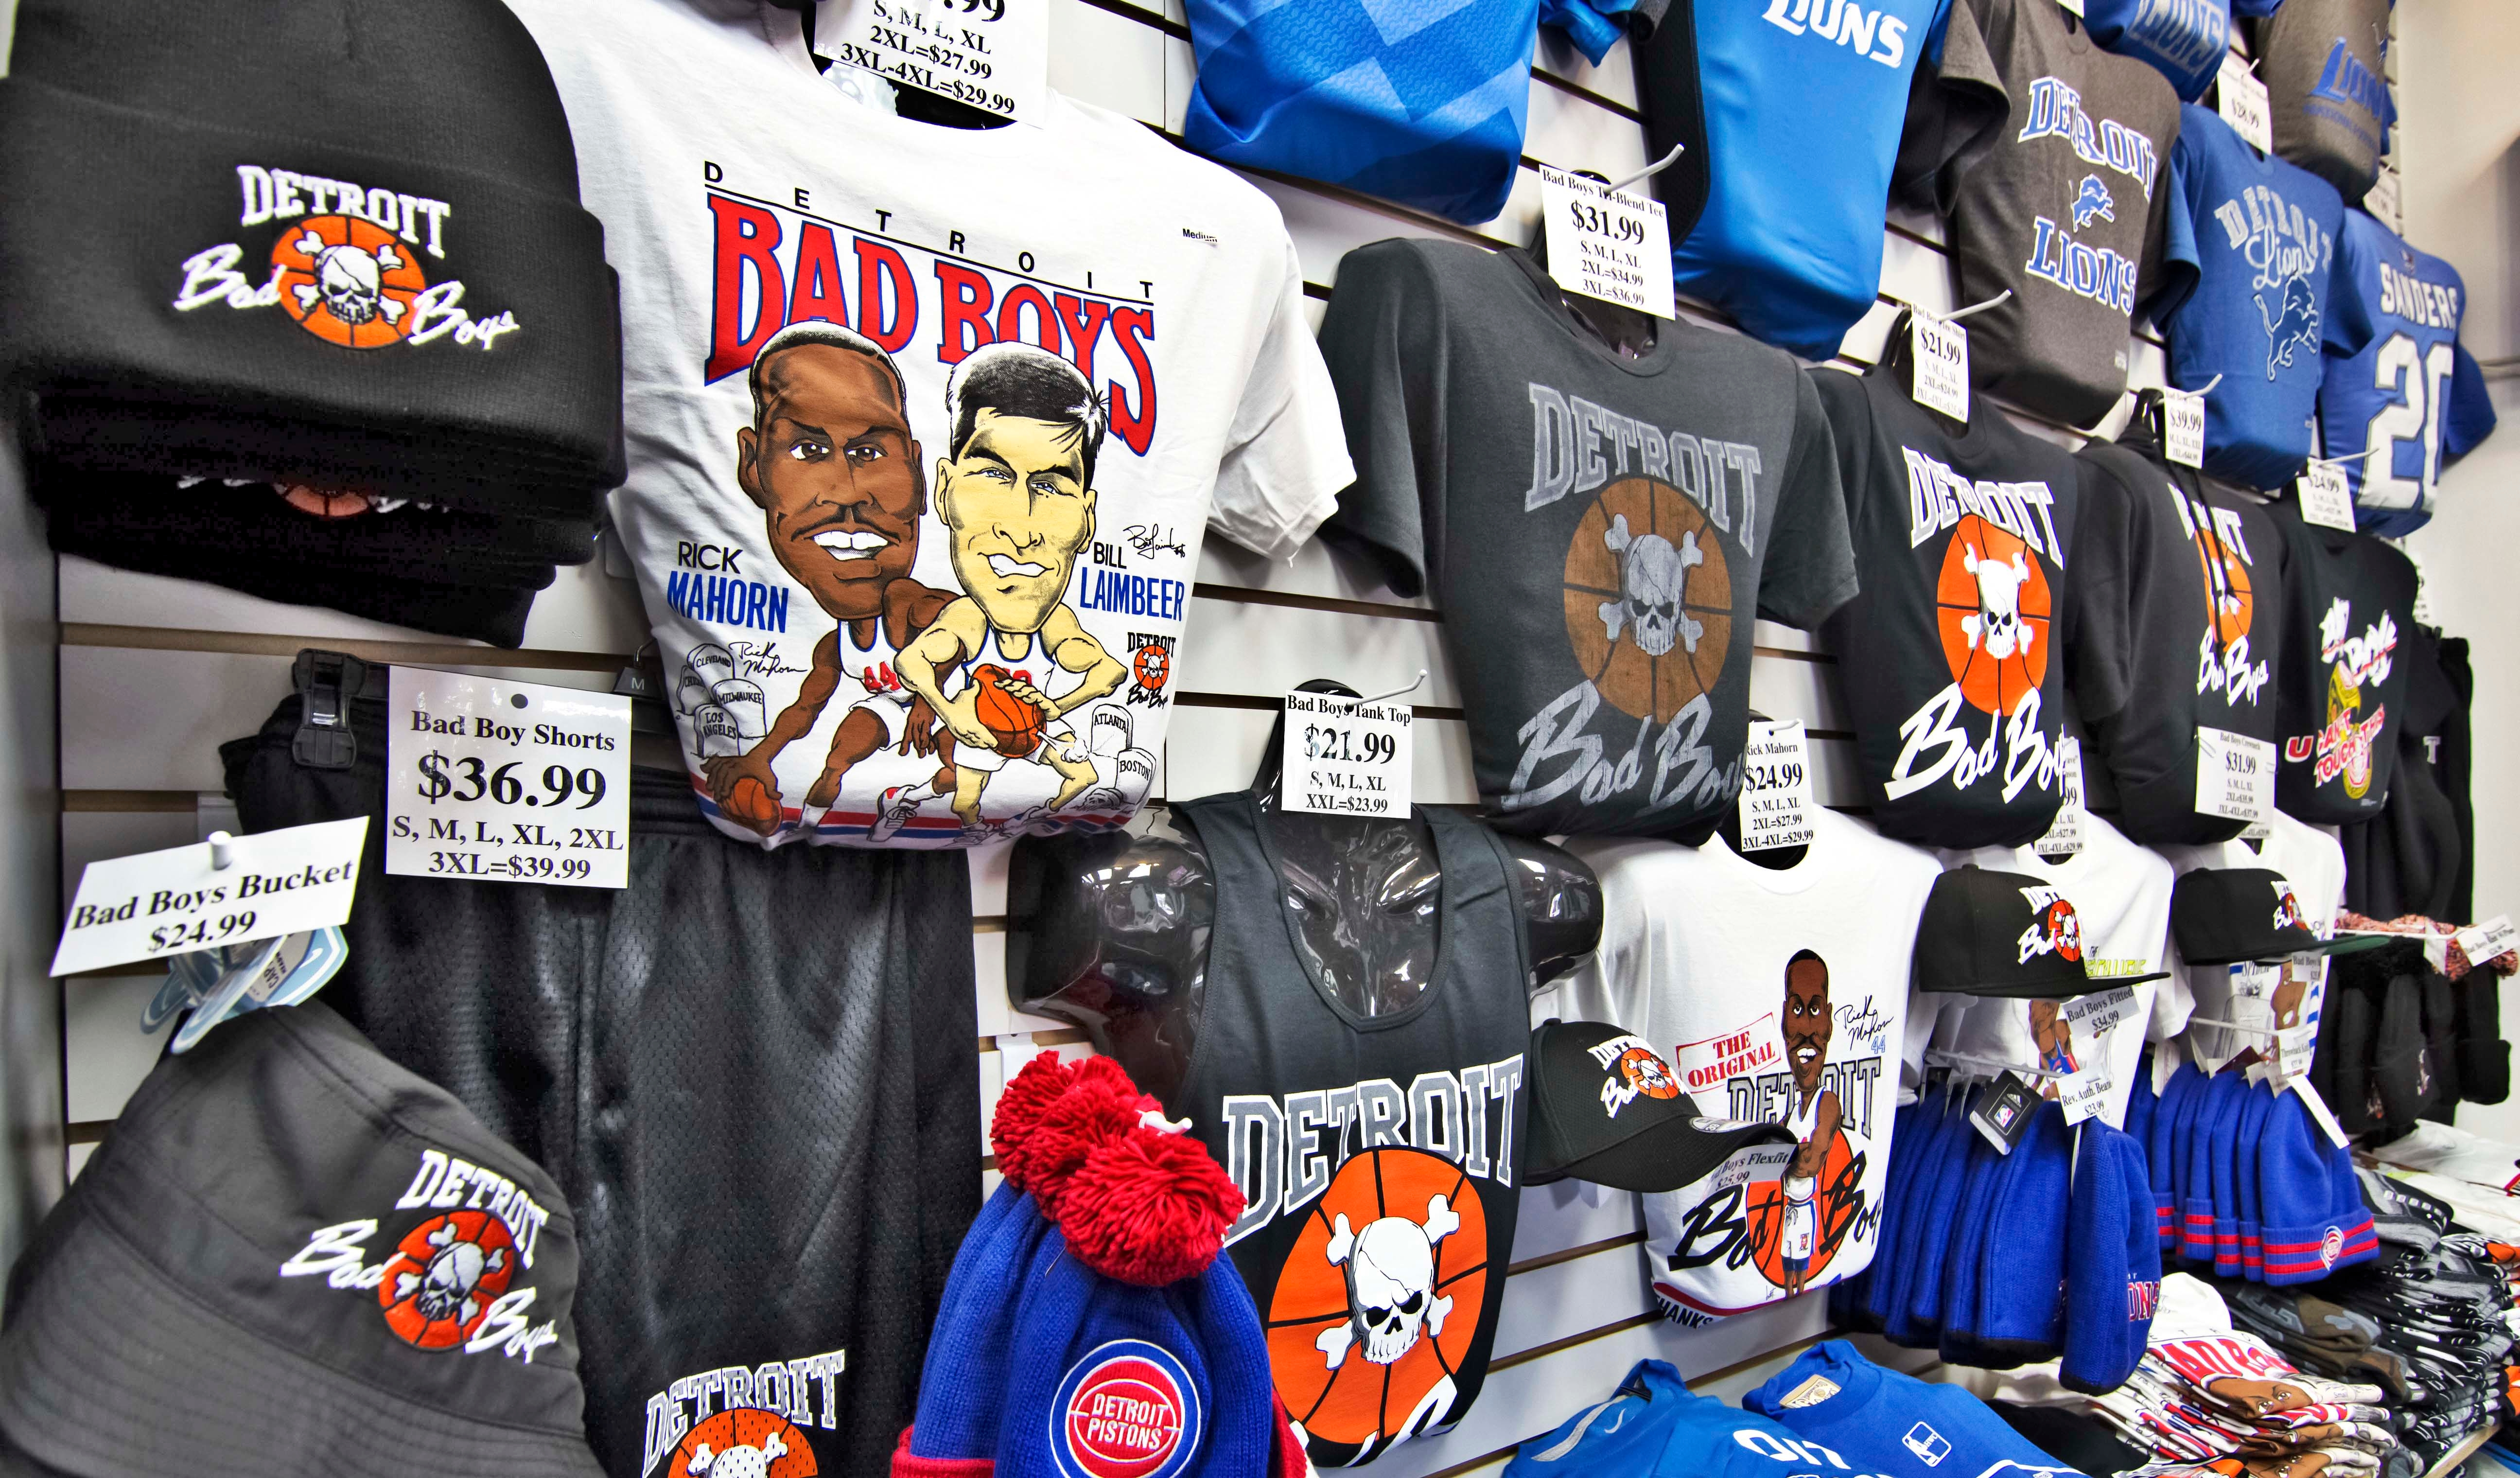 86b82246ae5f Detroit Pistons Bad Boy T Shirts